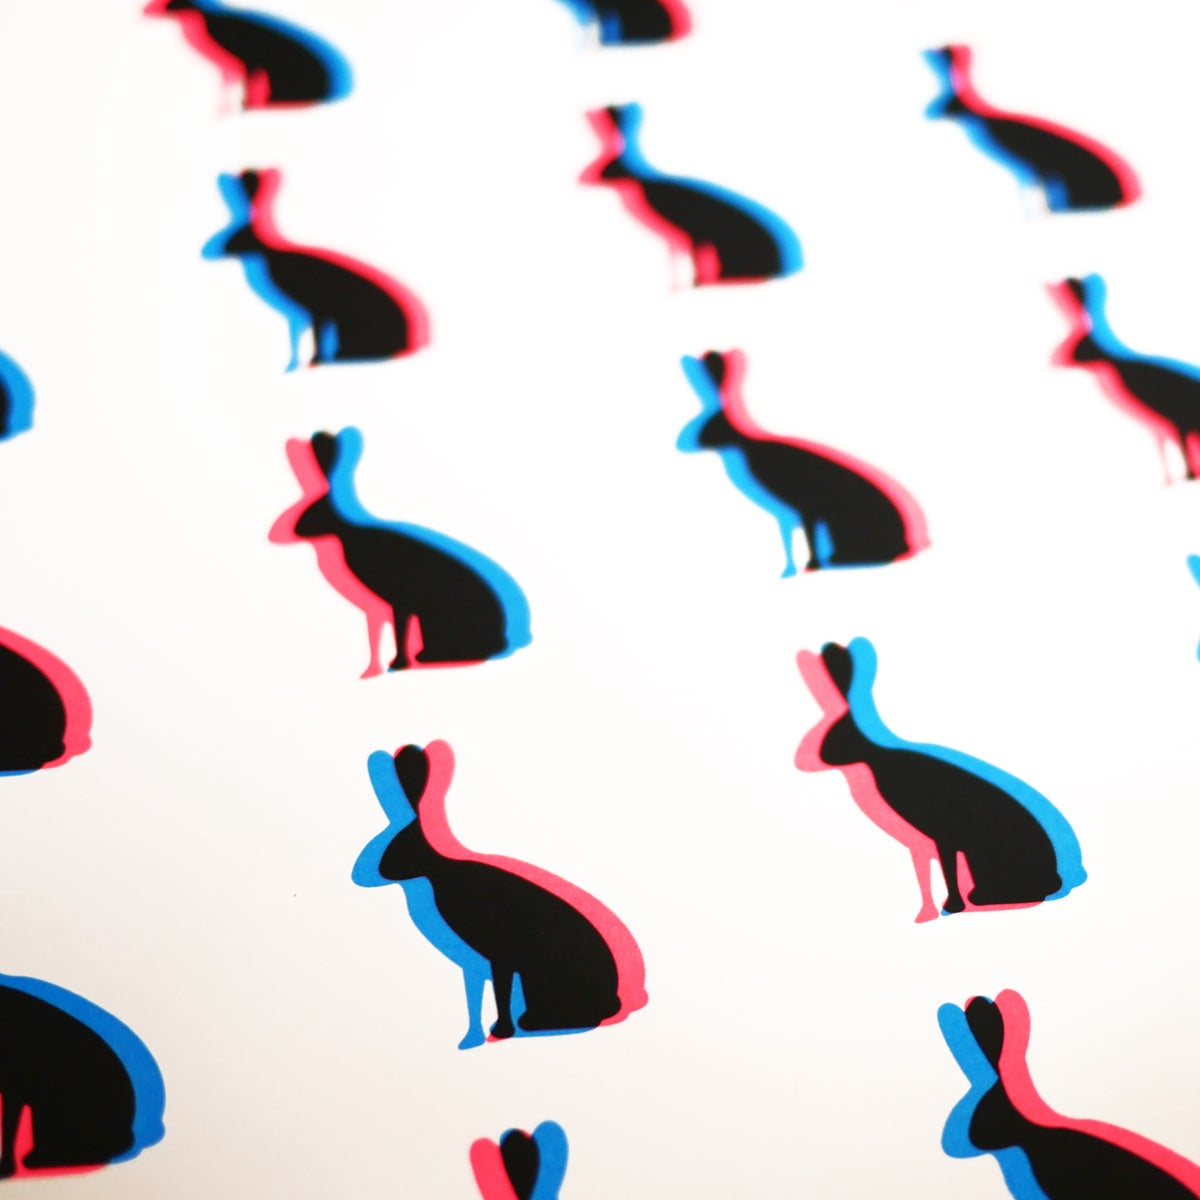 Image of Bunny Love (Fluoro Pink & Blue 3D Screenprint)